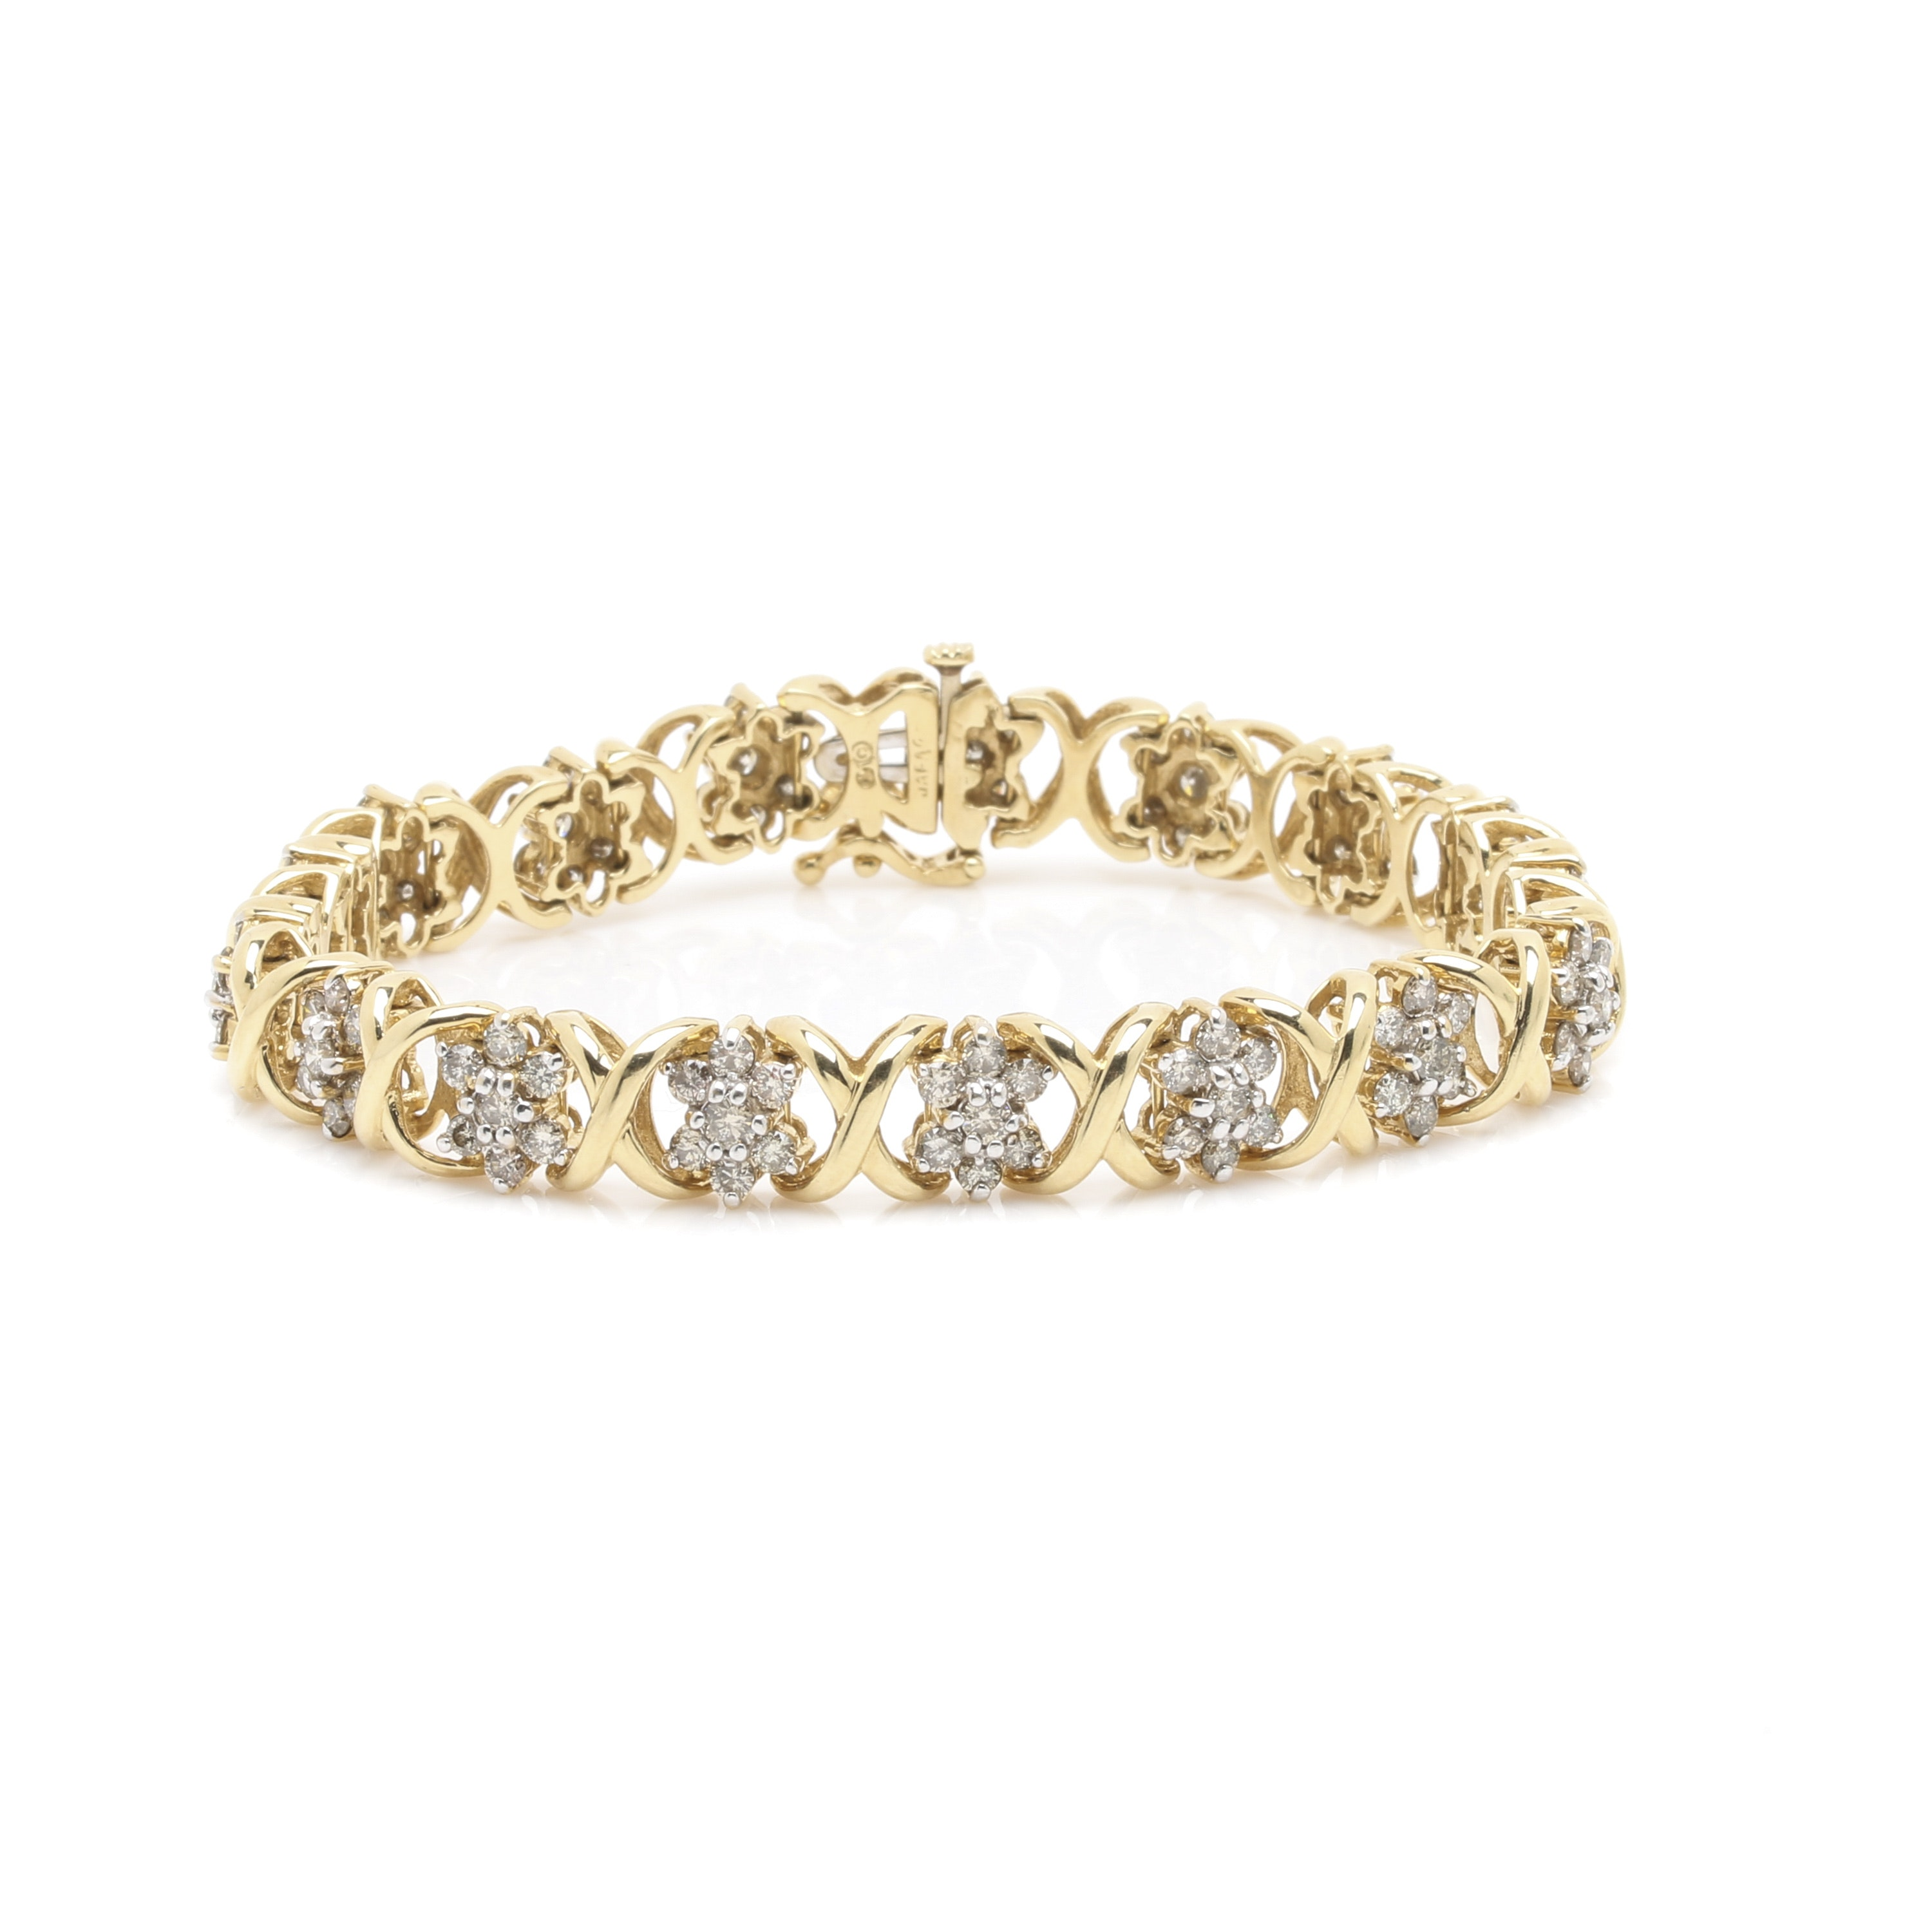 14K Yellow Gold 3.91 CTW Diamond Link Bracelet